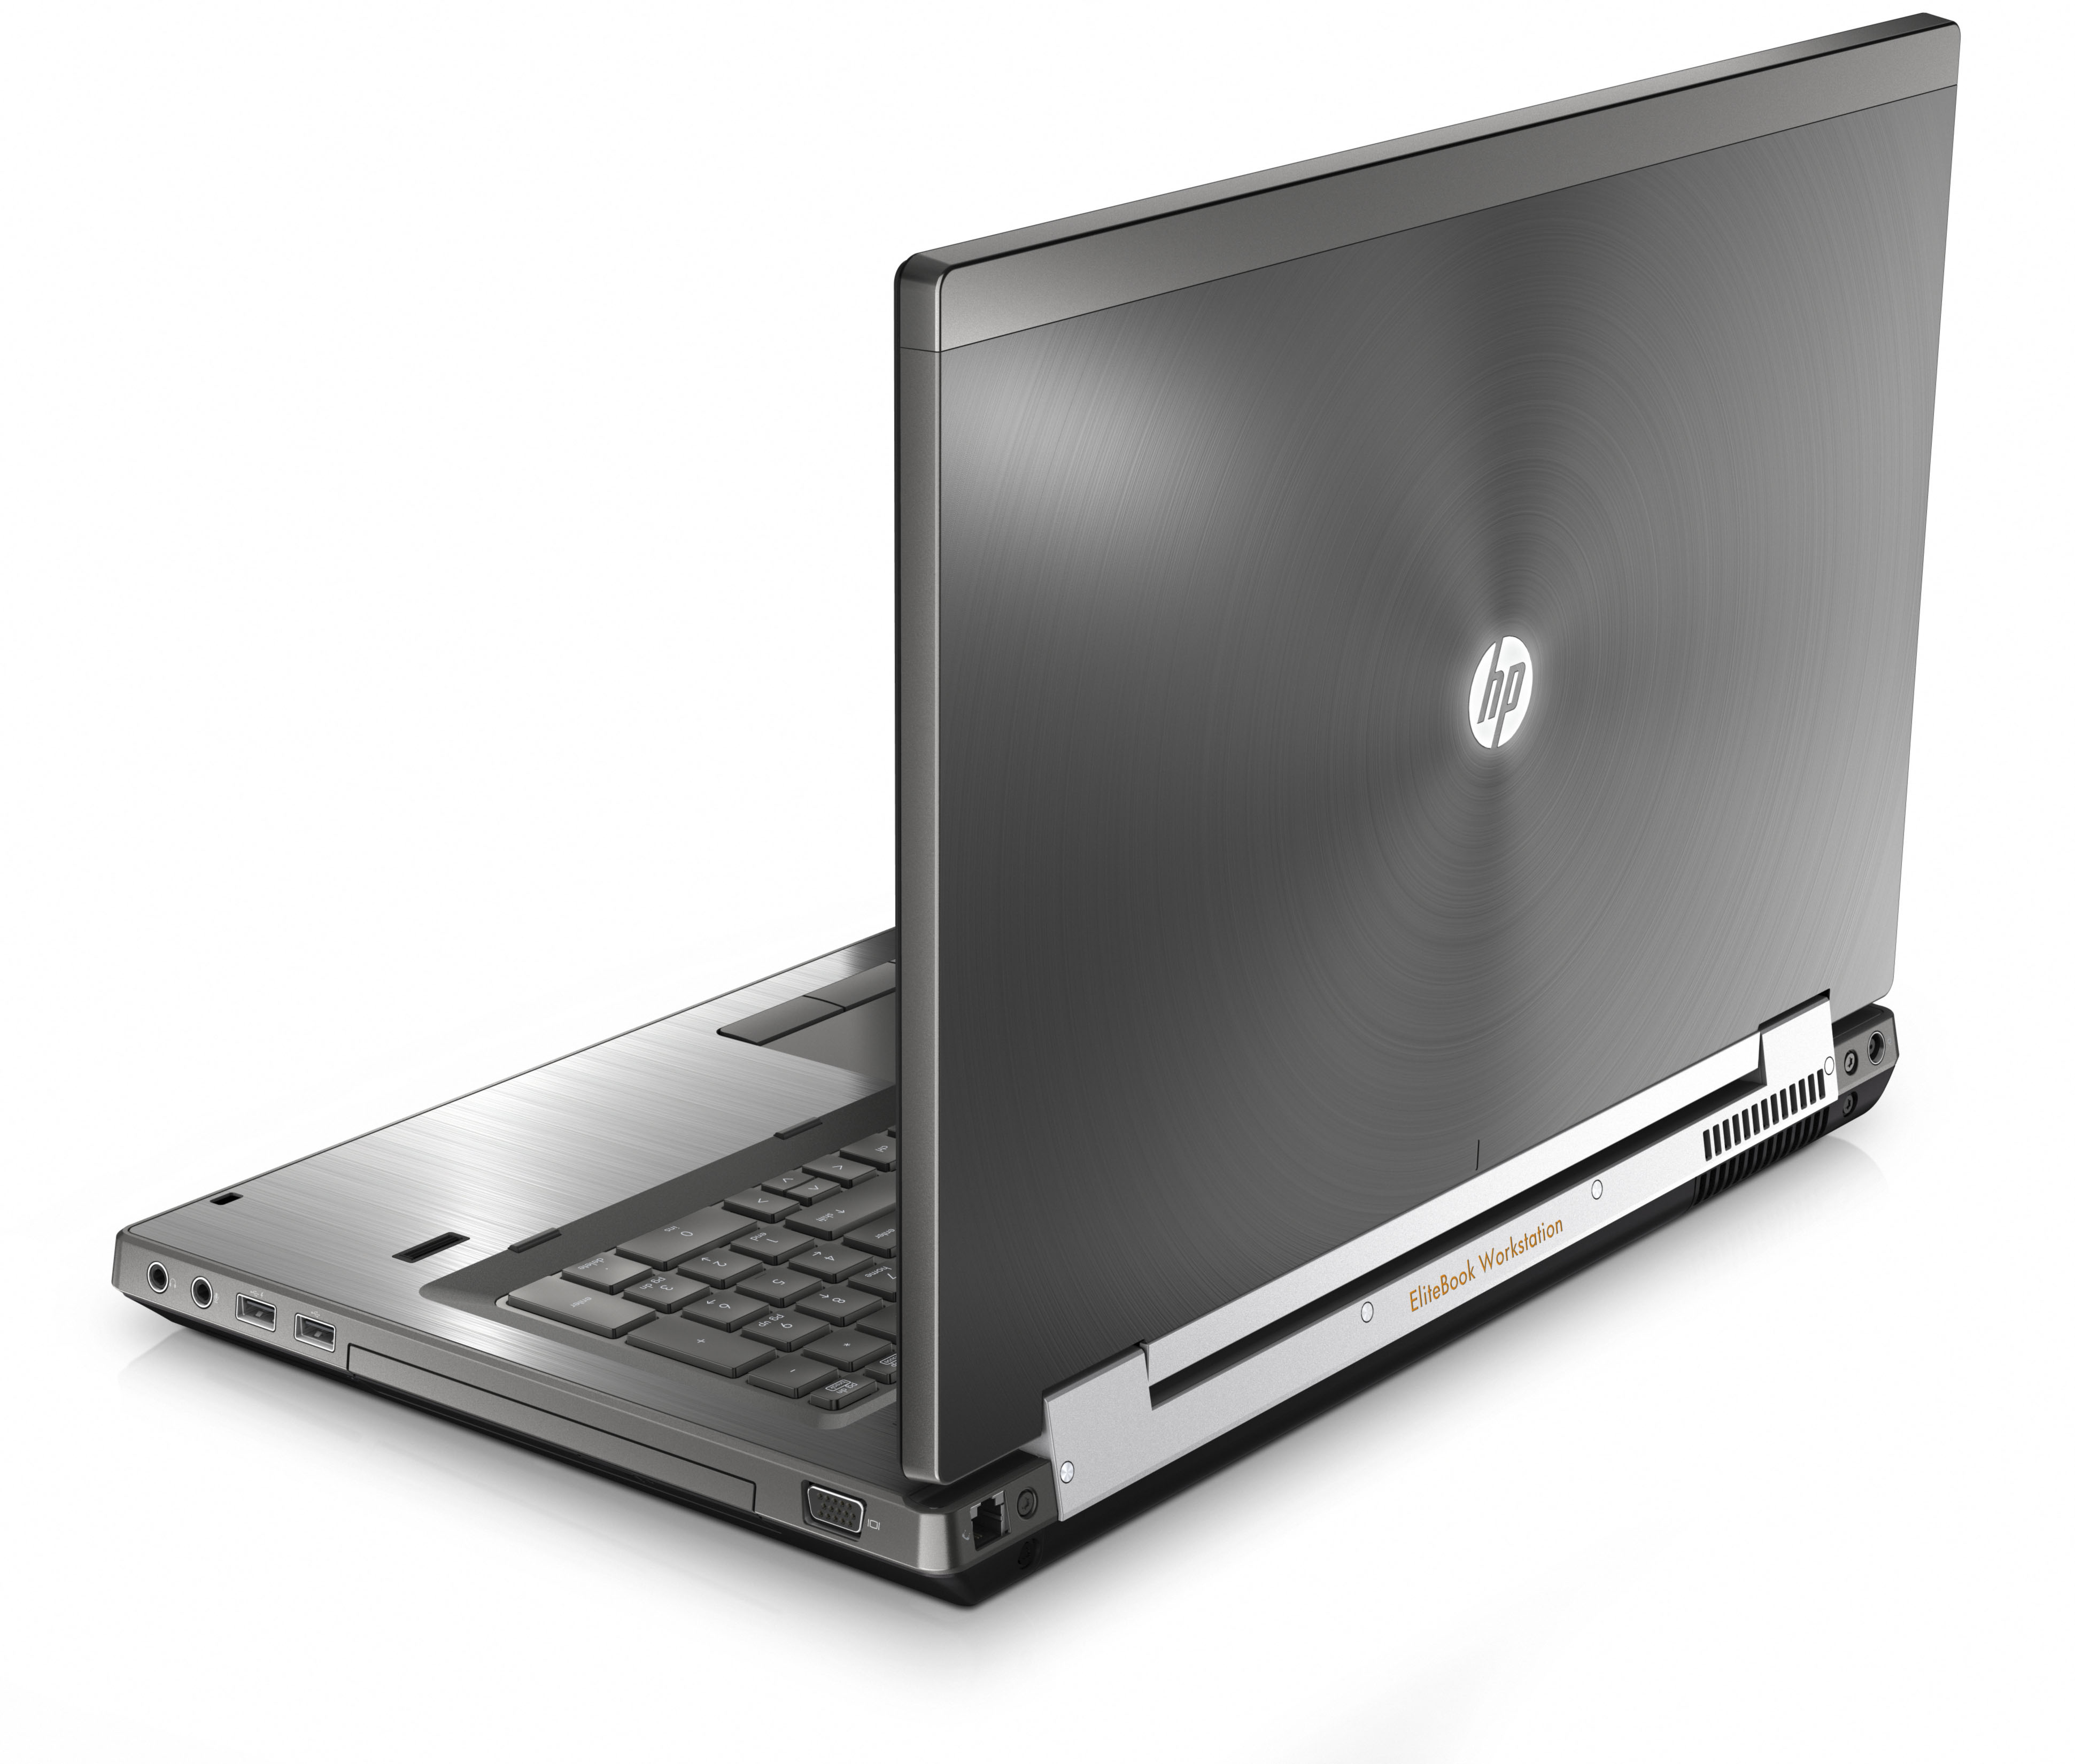 HP EliteBook 8760w Mobile Workstation USB Docking Station Drivers for PC